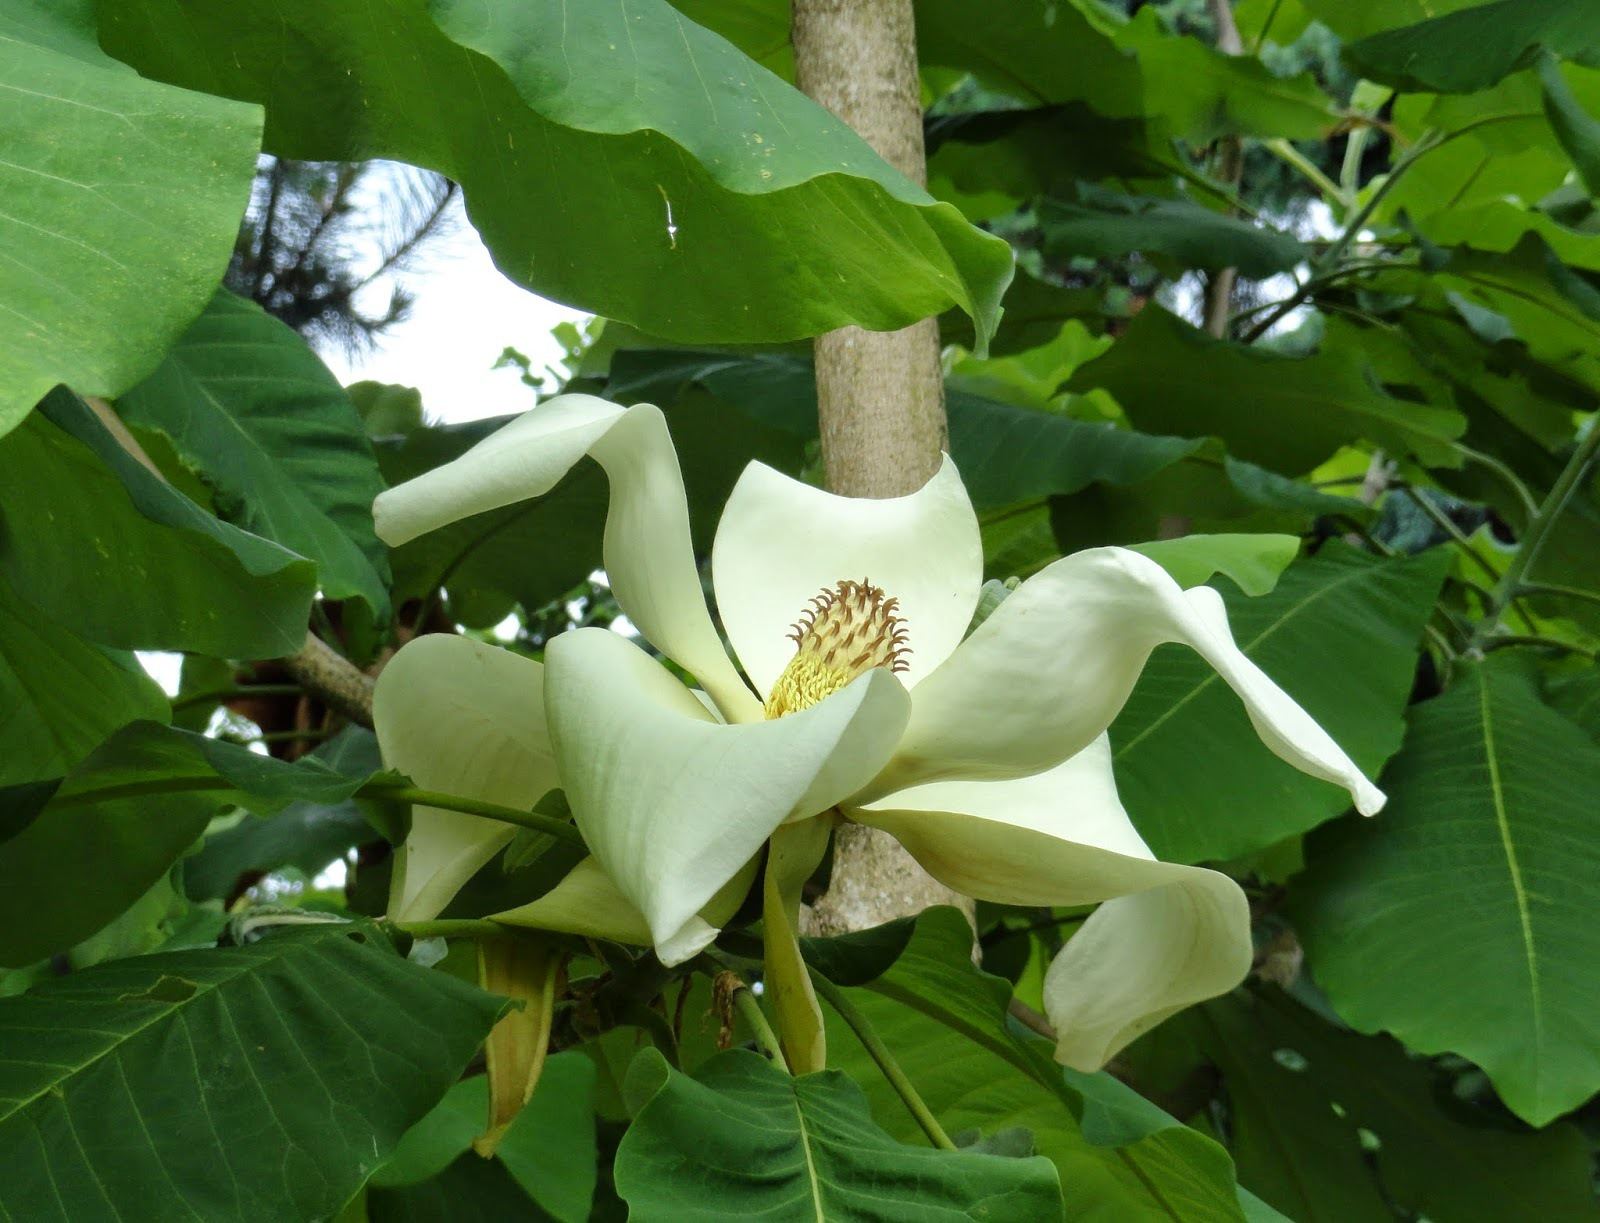 Magnolia Macrophylla High Quality Wallpapers